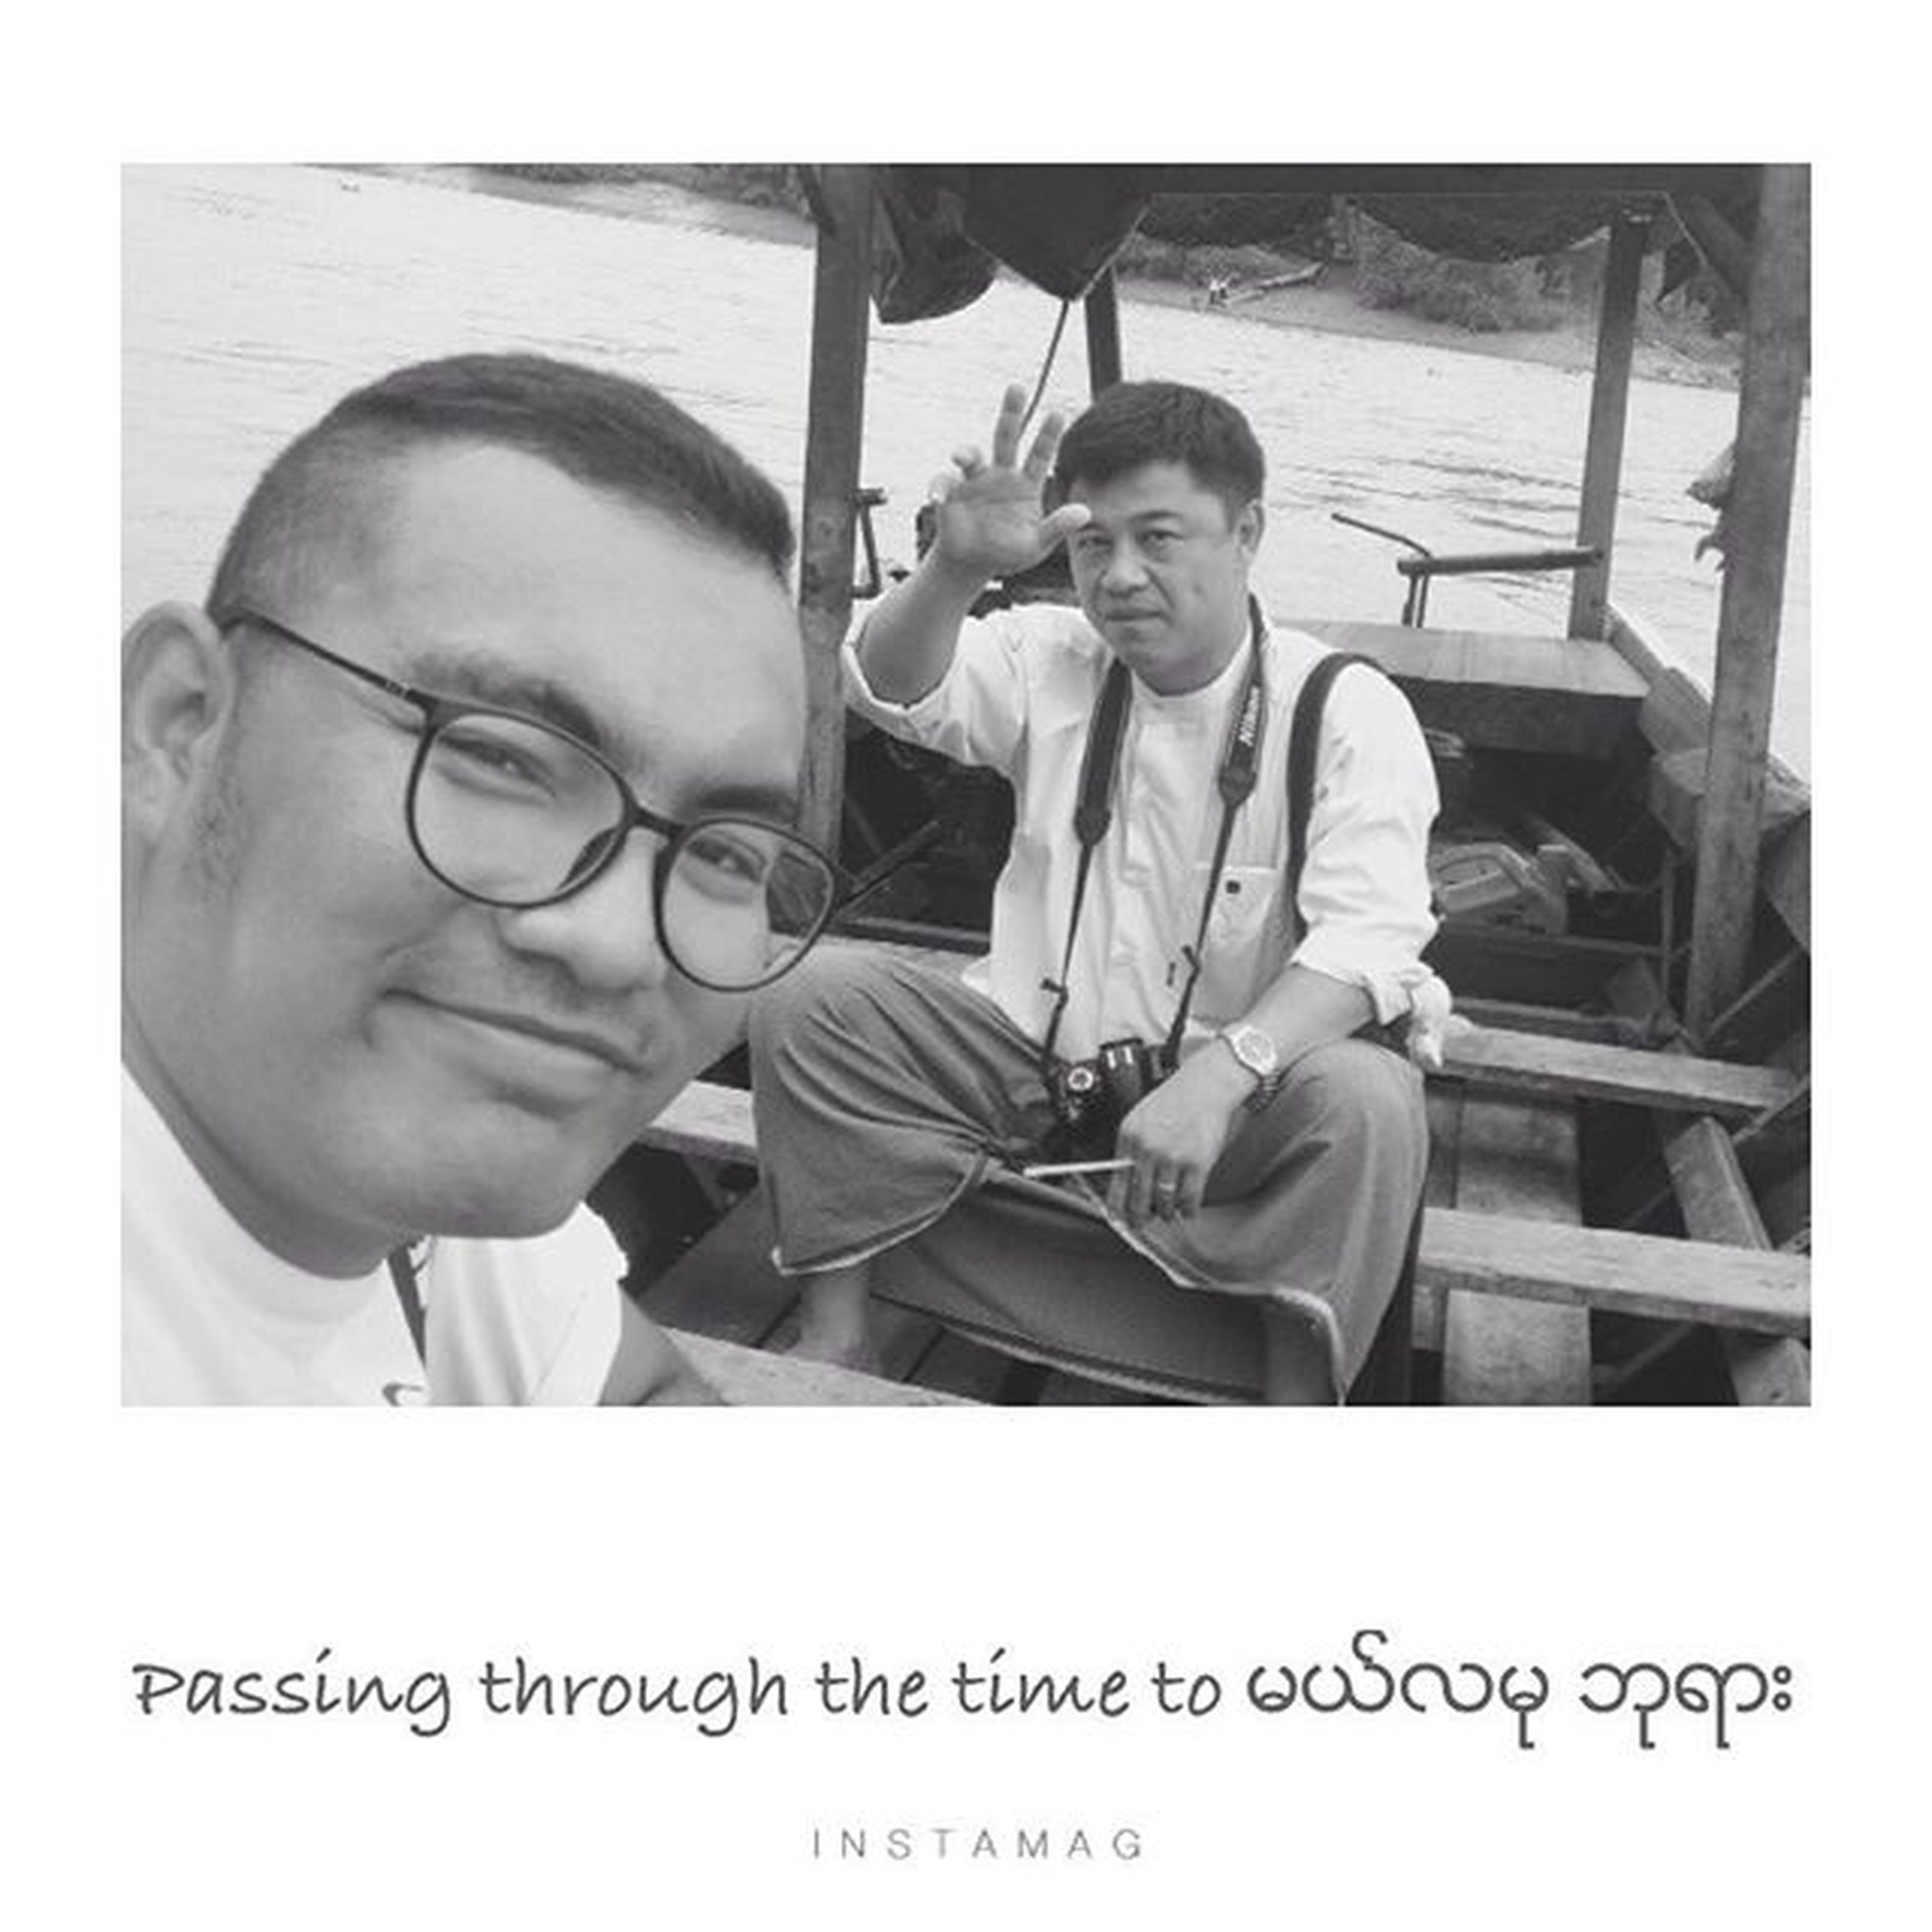 The time Crossing through the river to မယ္လမုဘုရား New_friend Like_the_brother_from_another_mom ..